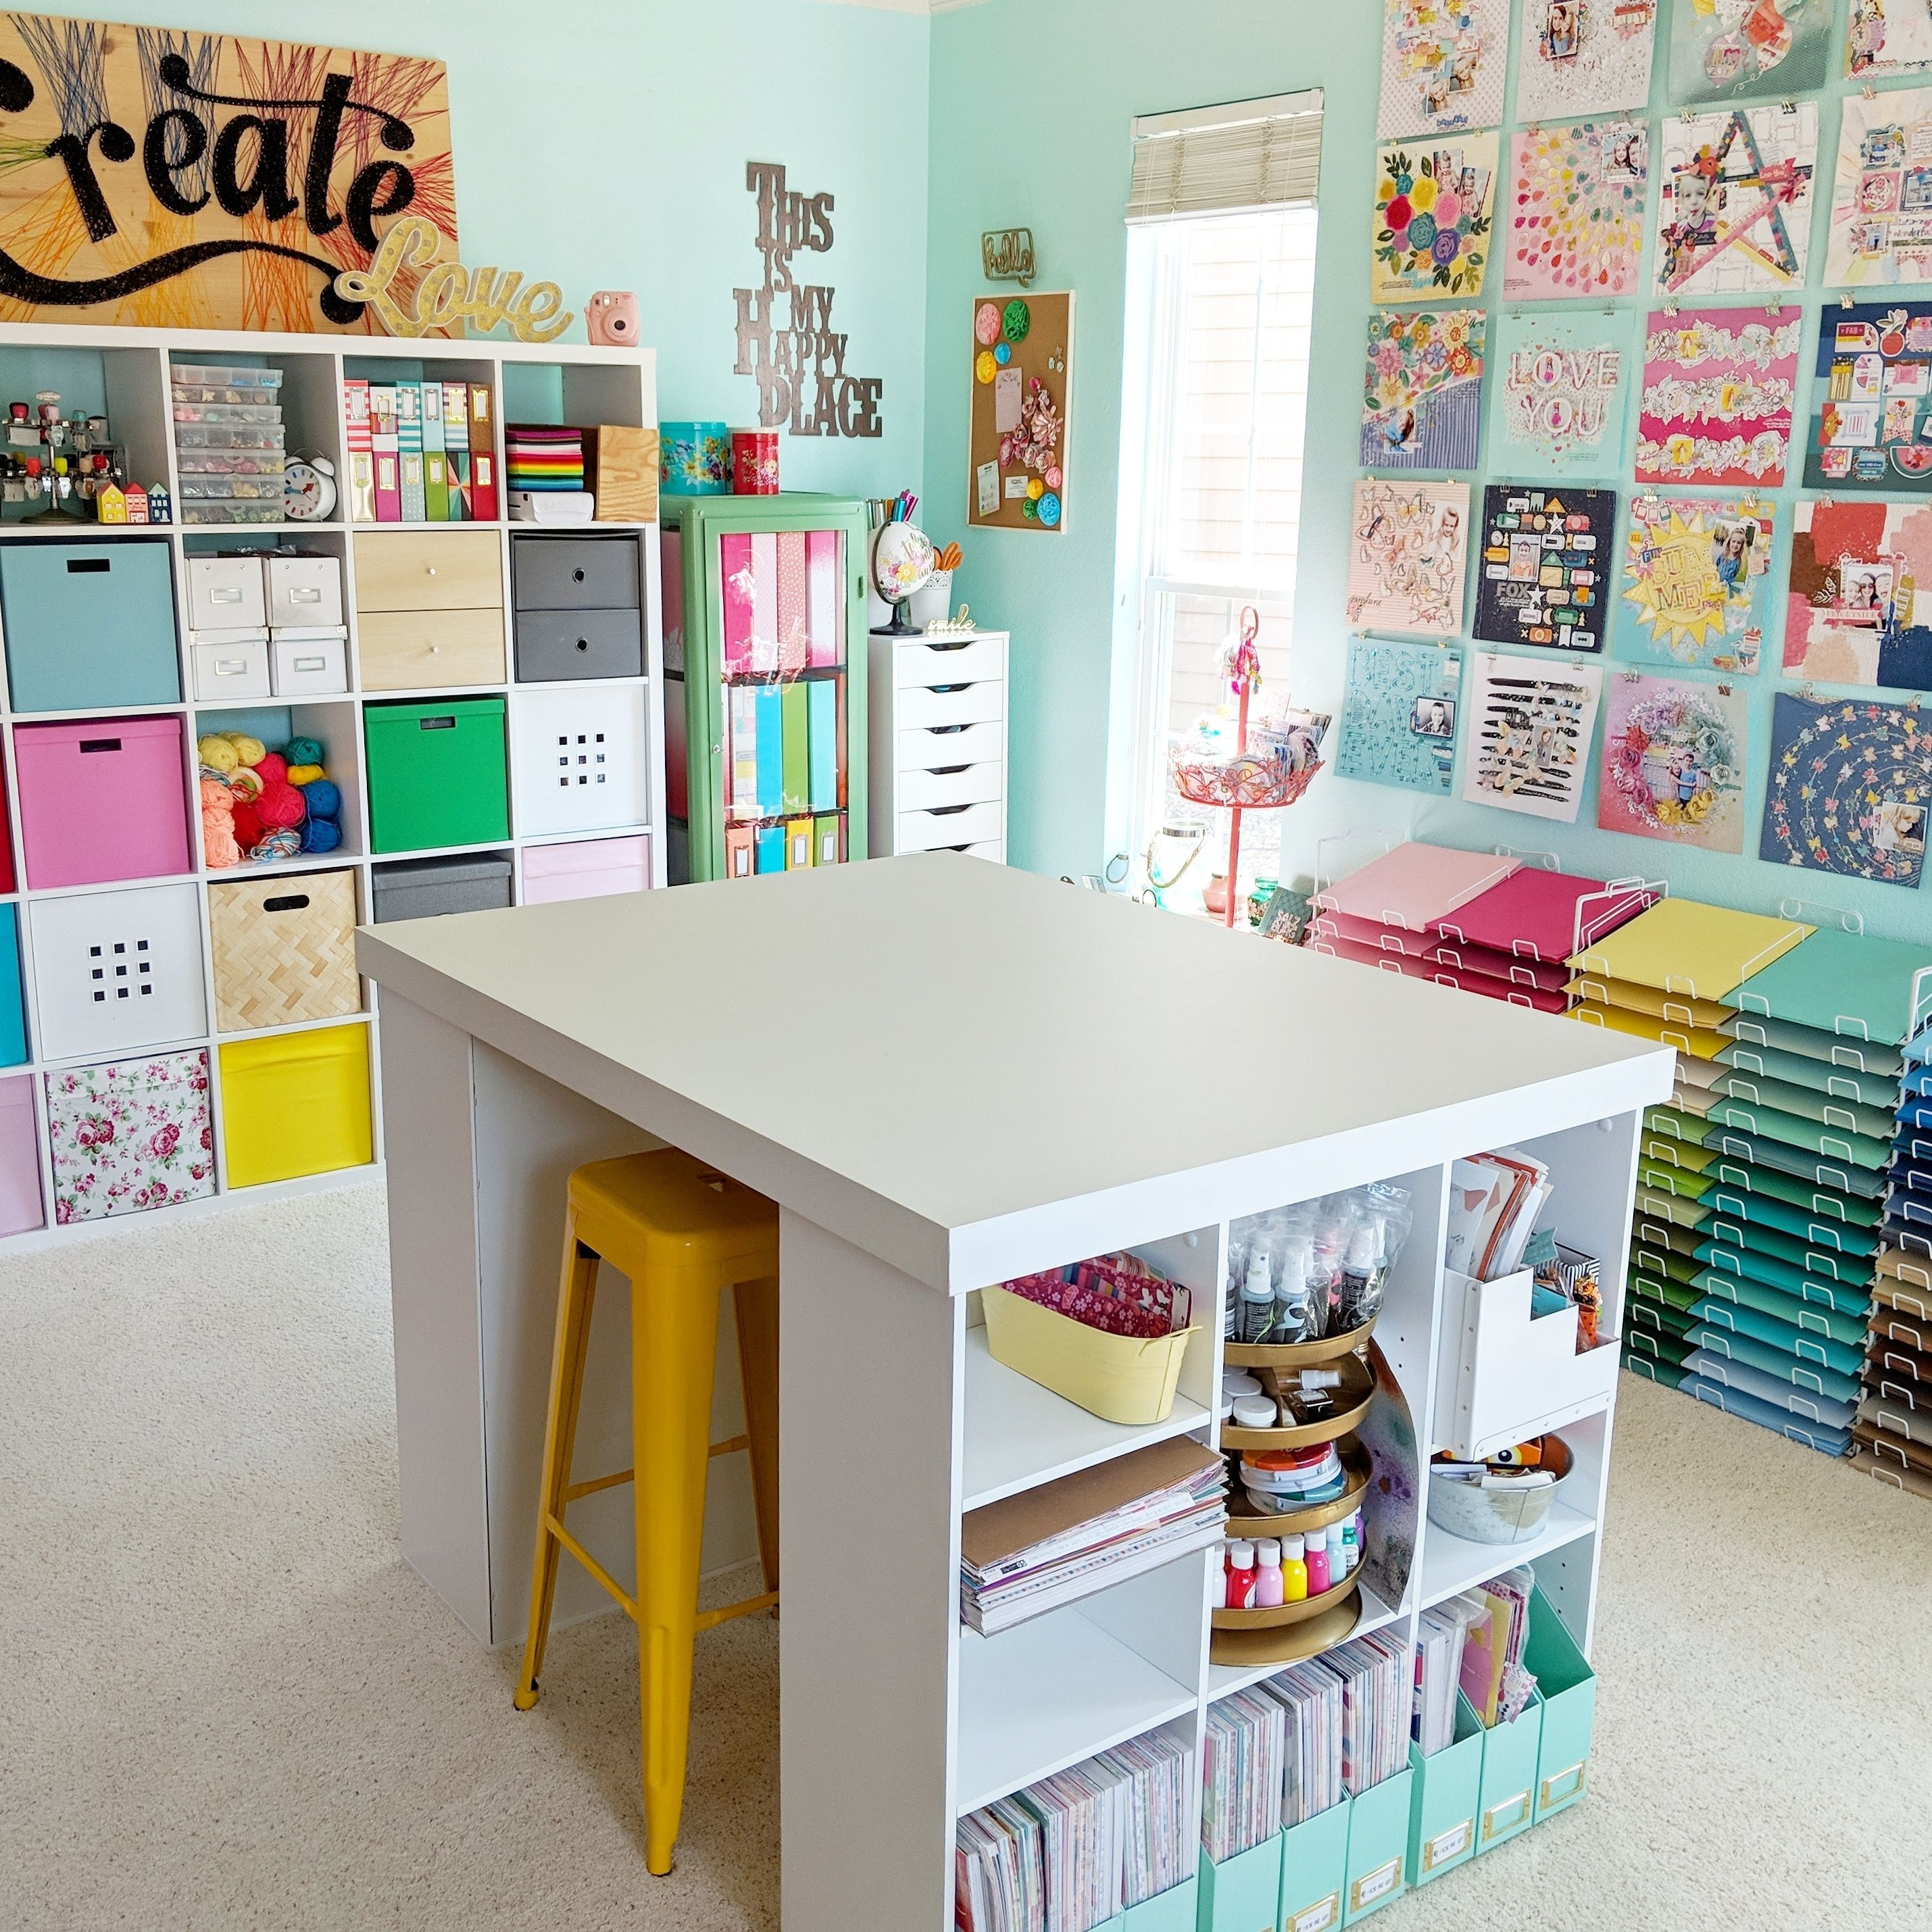 Just A Little Craft Room Love To Get You Through Your Day We Love How Bright And Colorful Paigetaylo In 2020 Bastelzimmer Design Bastelraum Tische Craft Room Storage